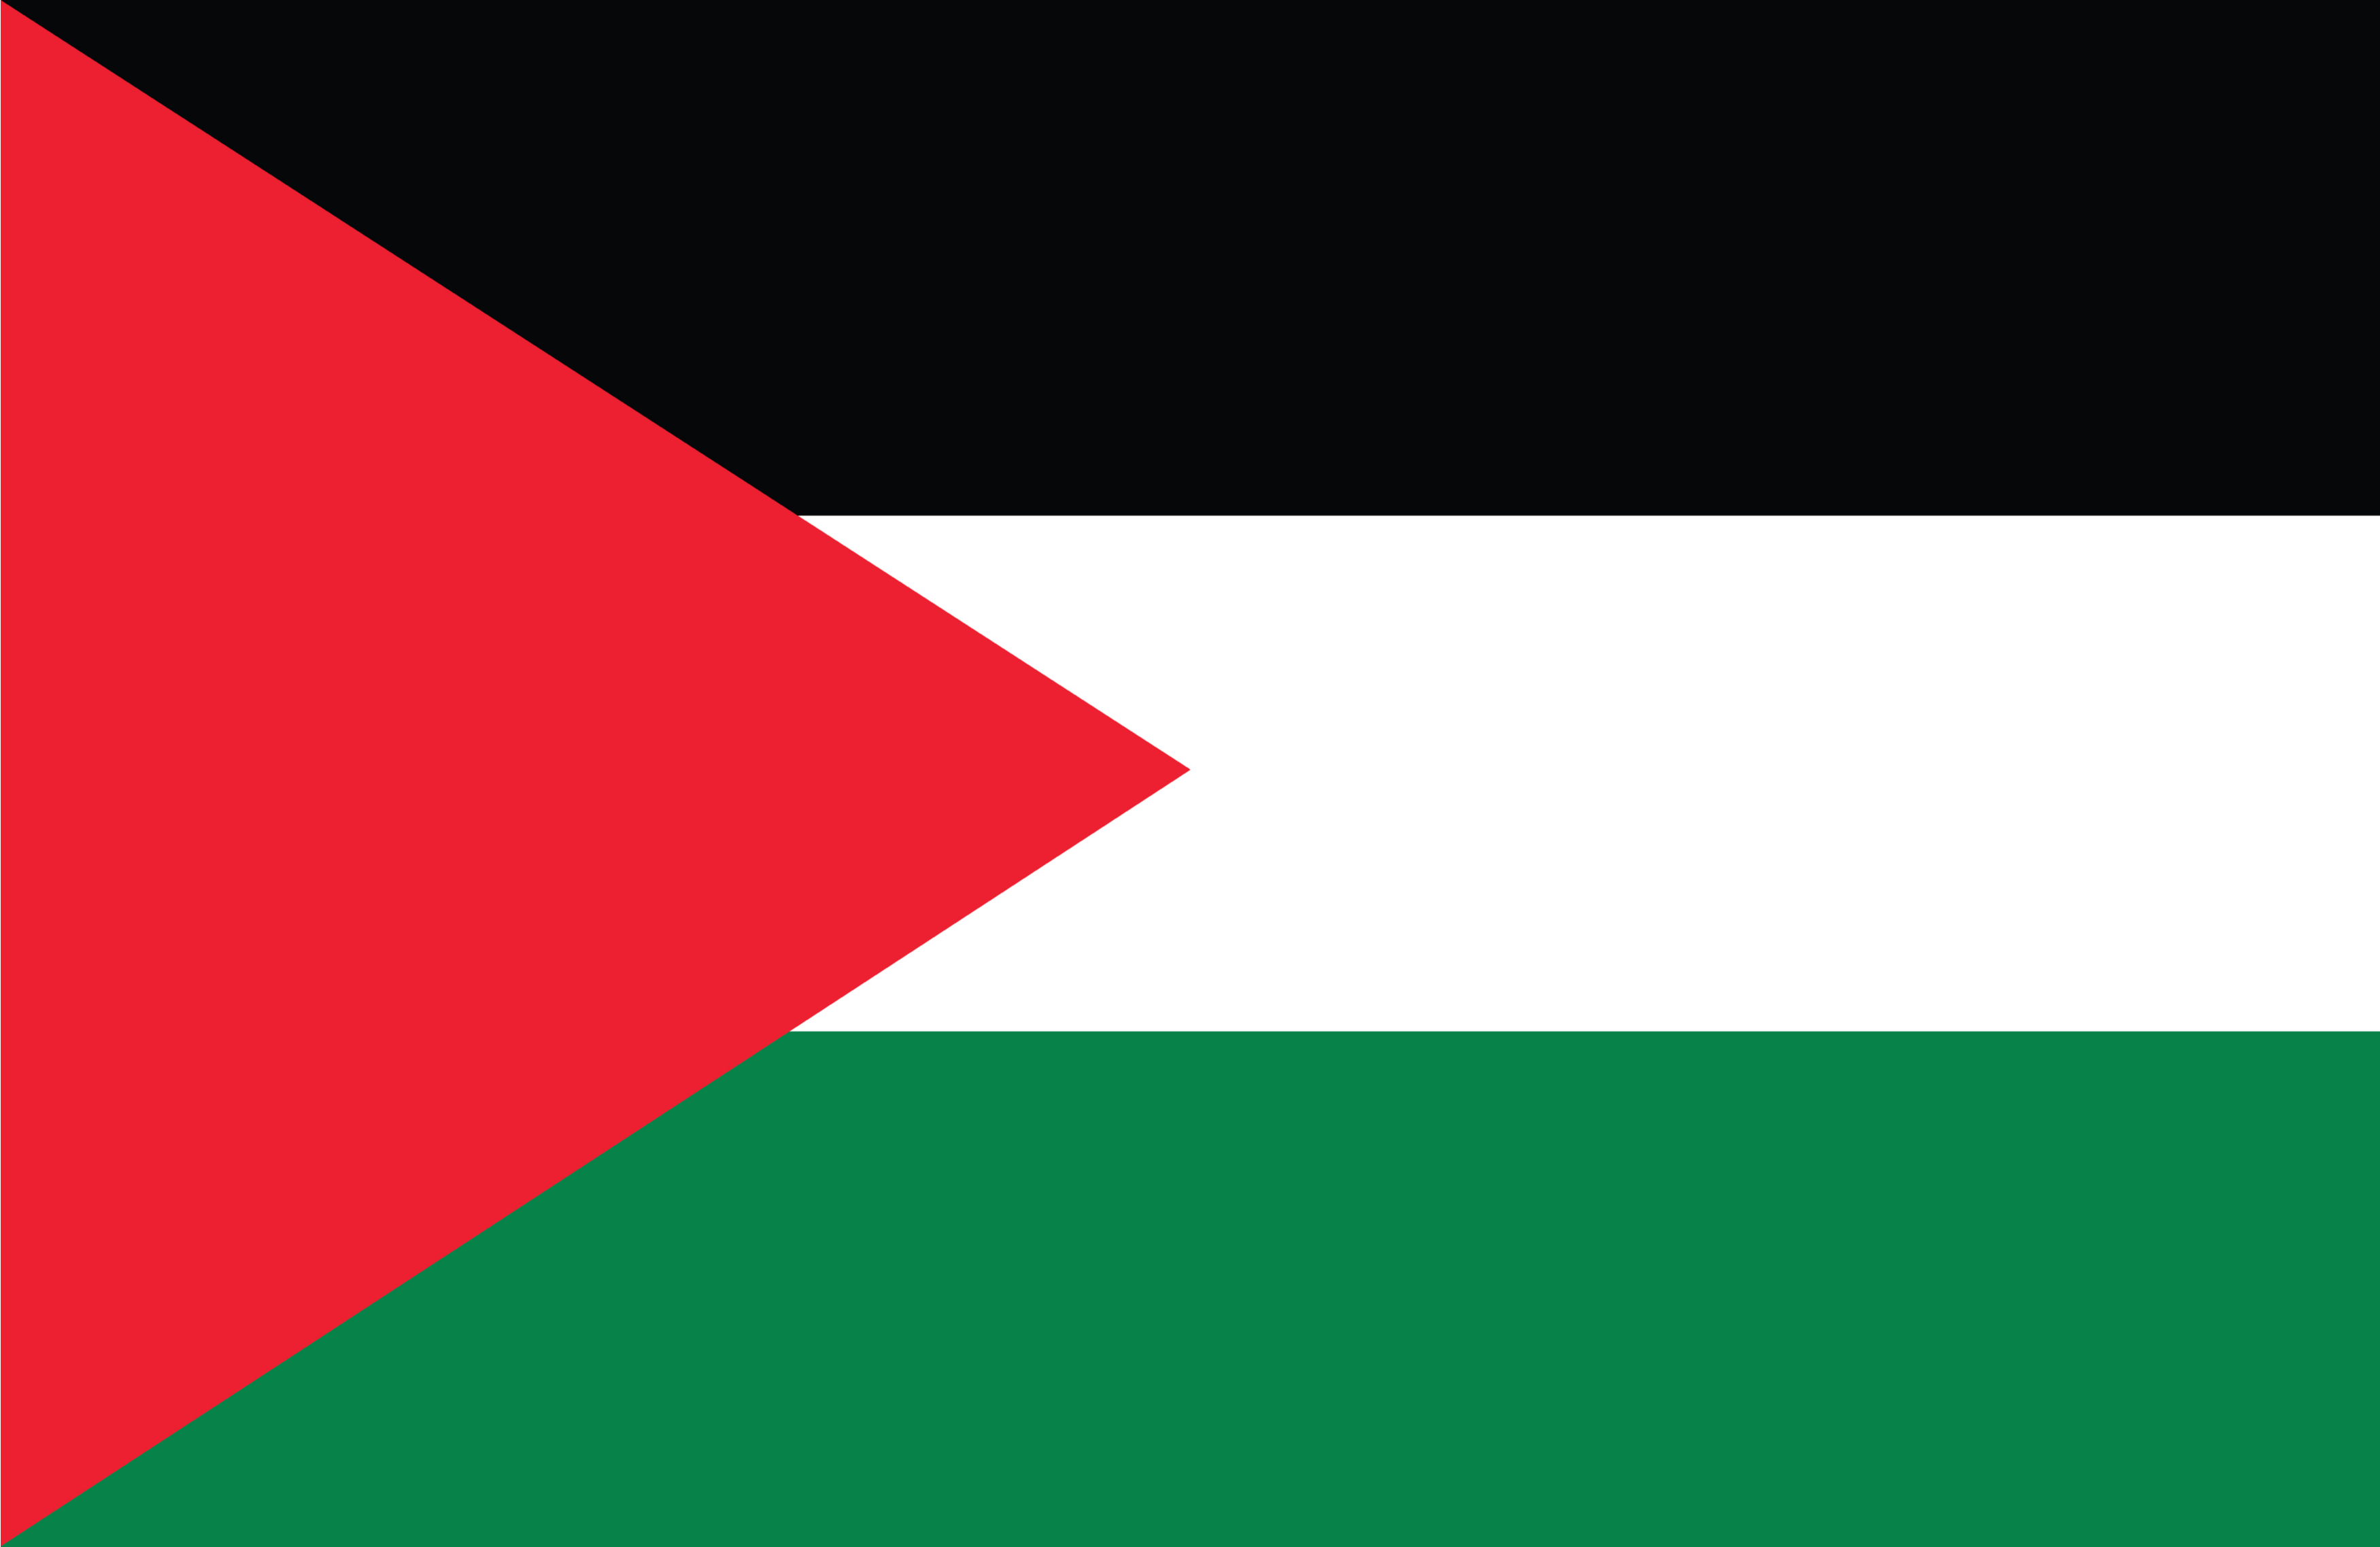 Flag of Palestinian Territory